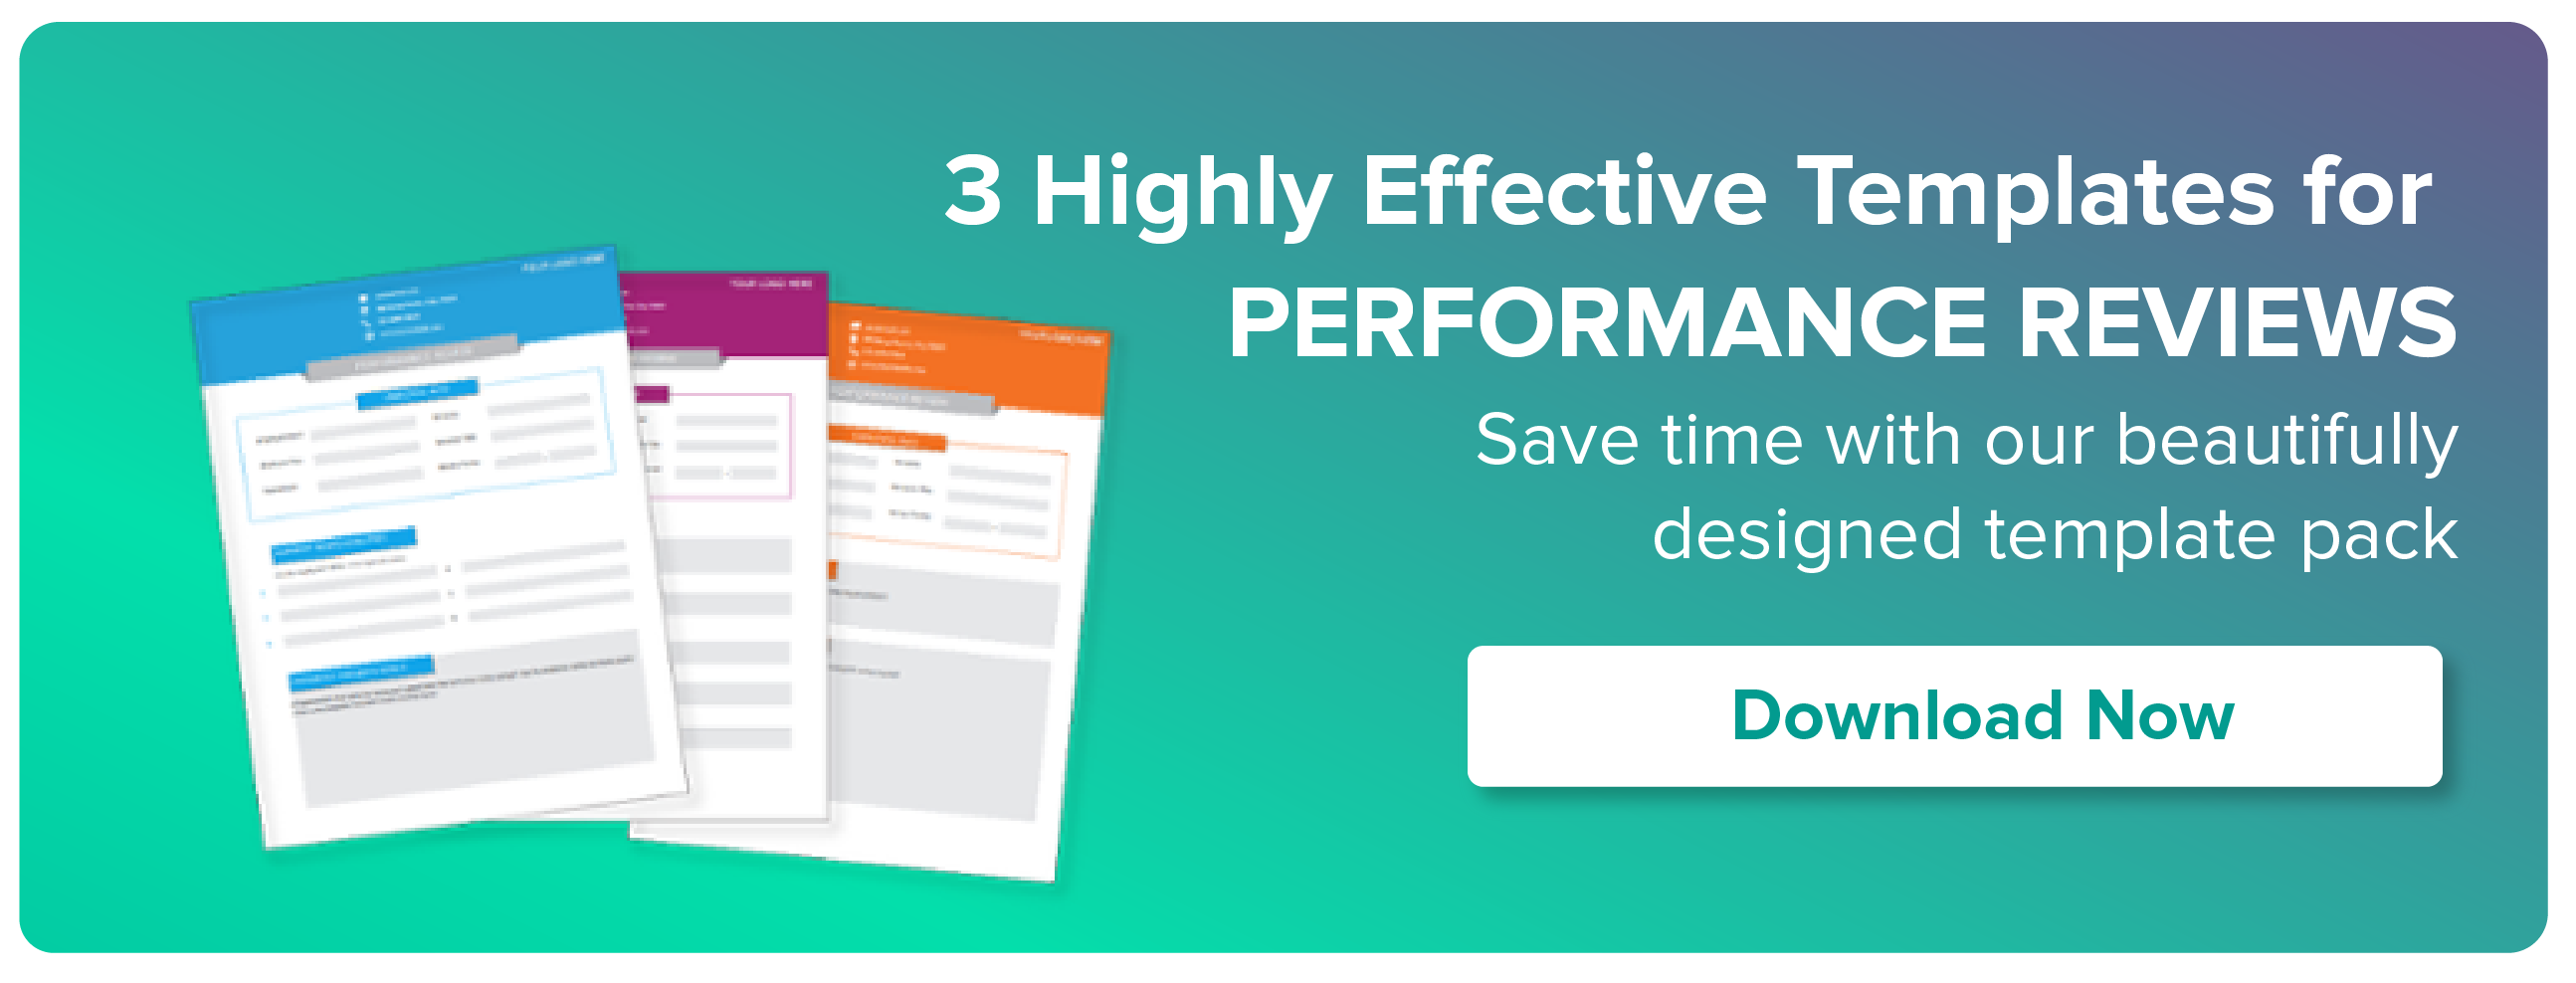 DOWNLOAD NOW: 3 HIGHLY EFFECTIVE TEMPLATES FOR PERFORMANCE REVIEWS